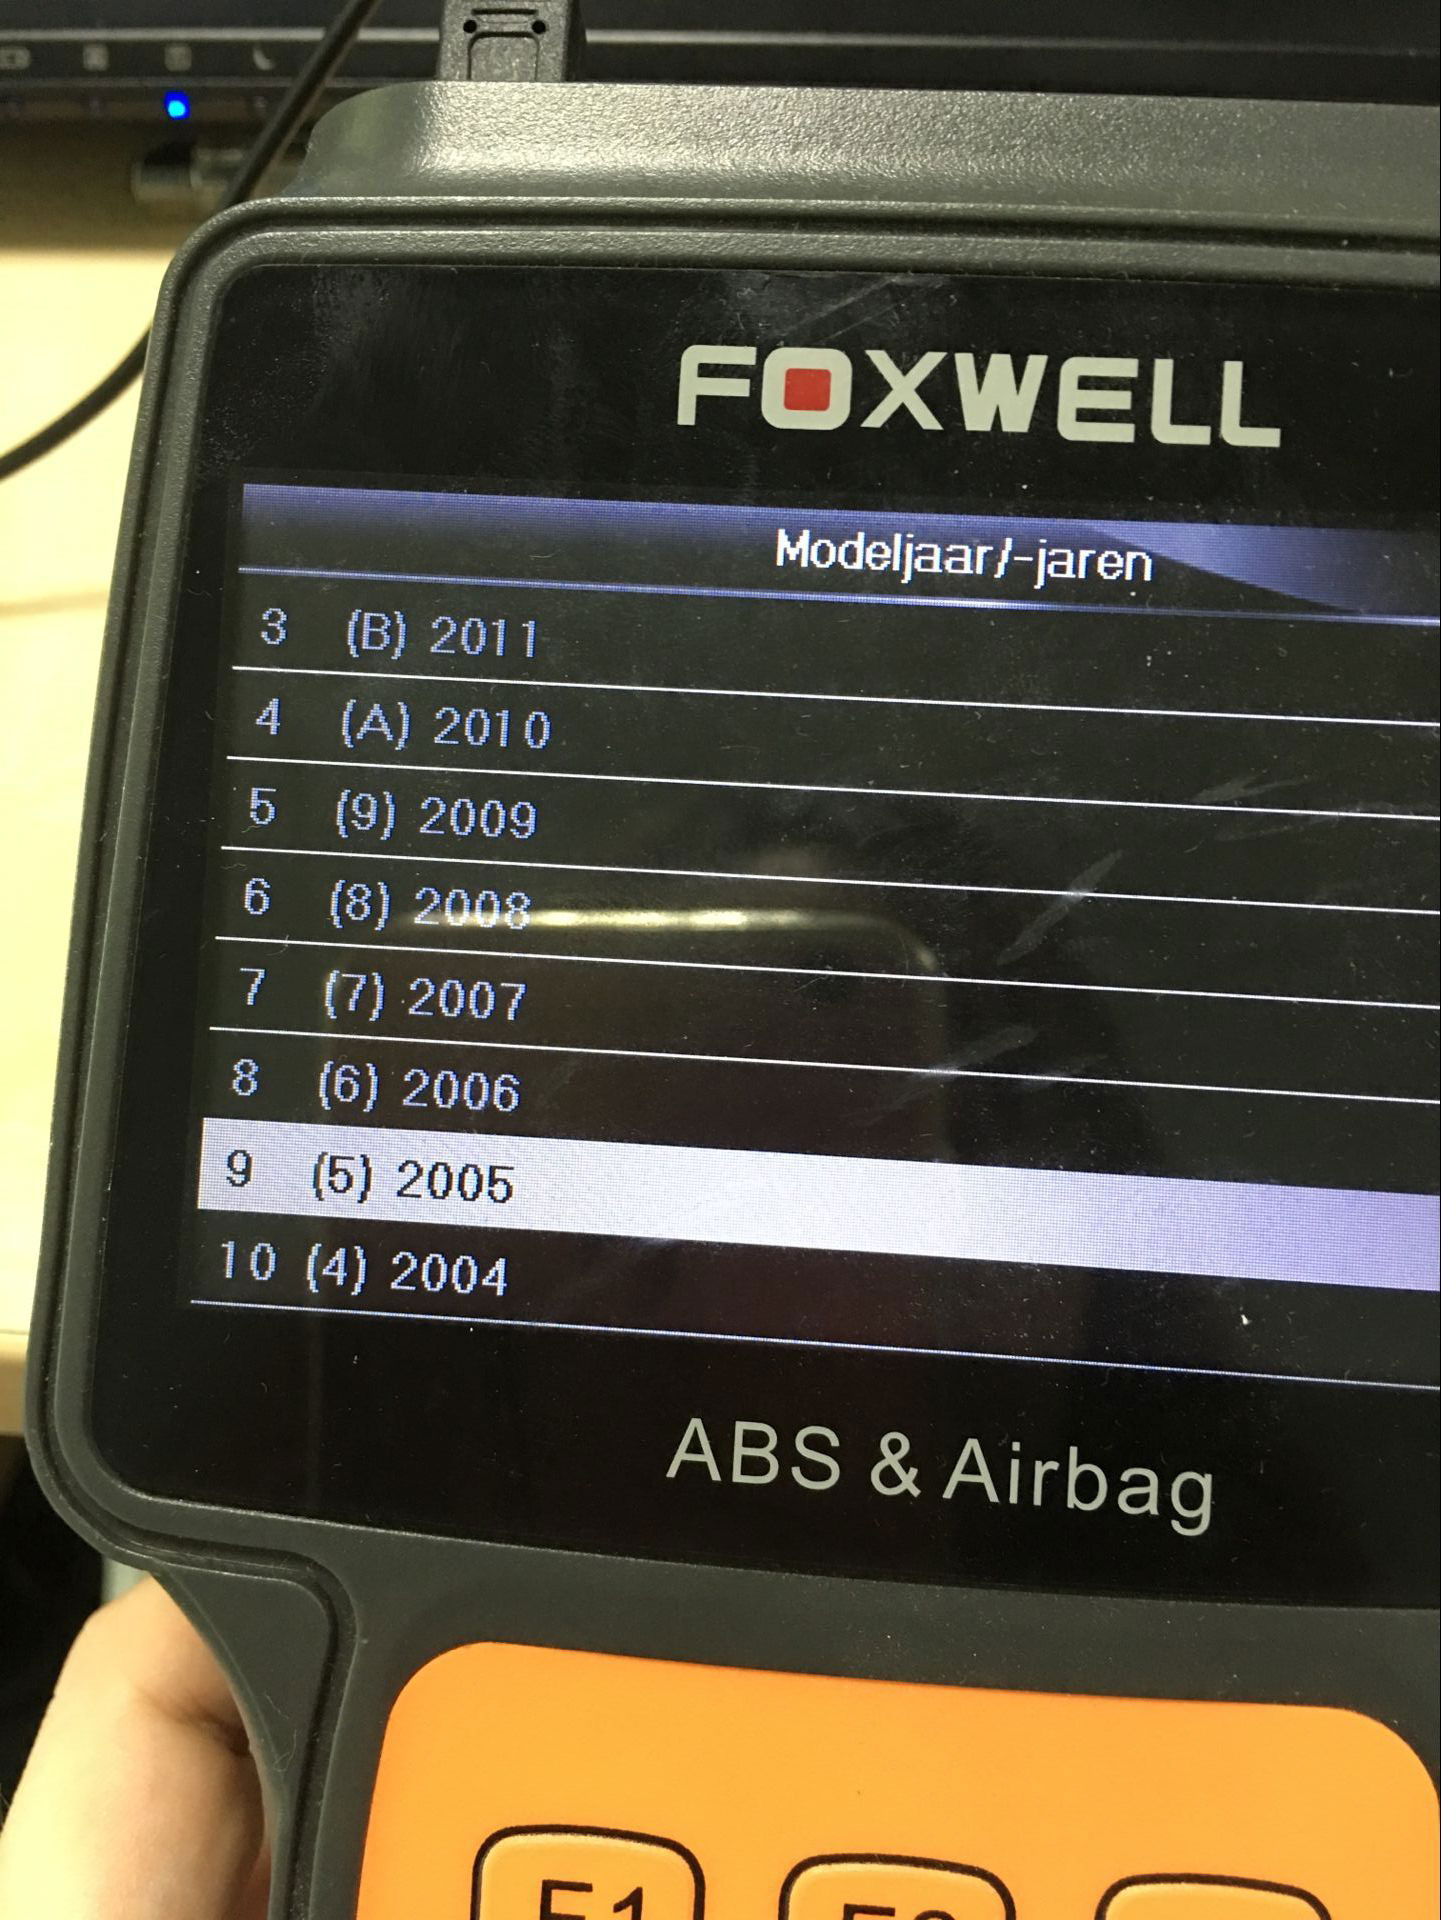 Original Foxwell Nt630 Reset Airbag On Gmc 2005 Truck Car Diagnostic Tool